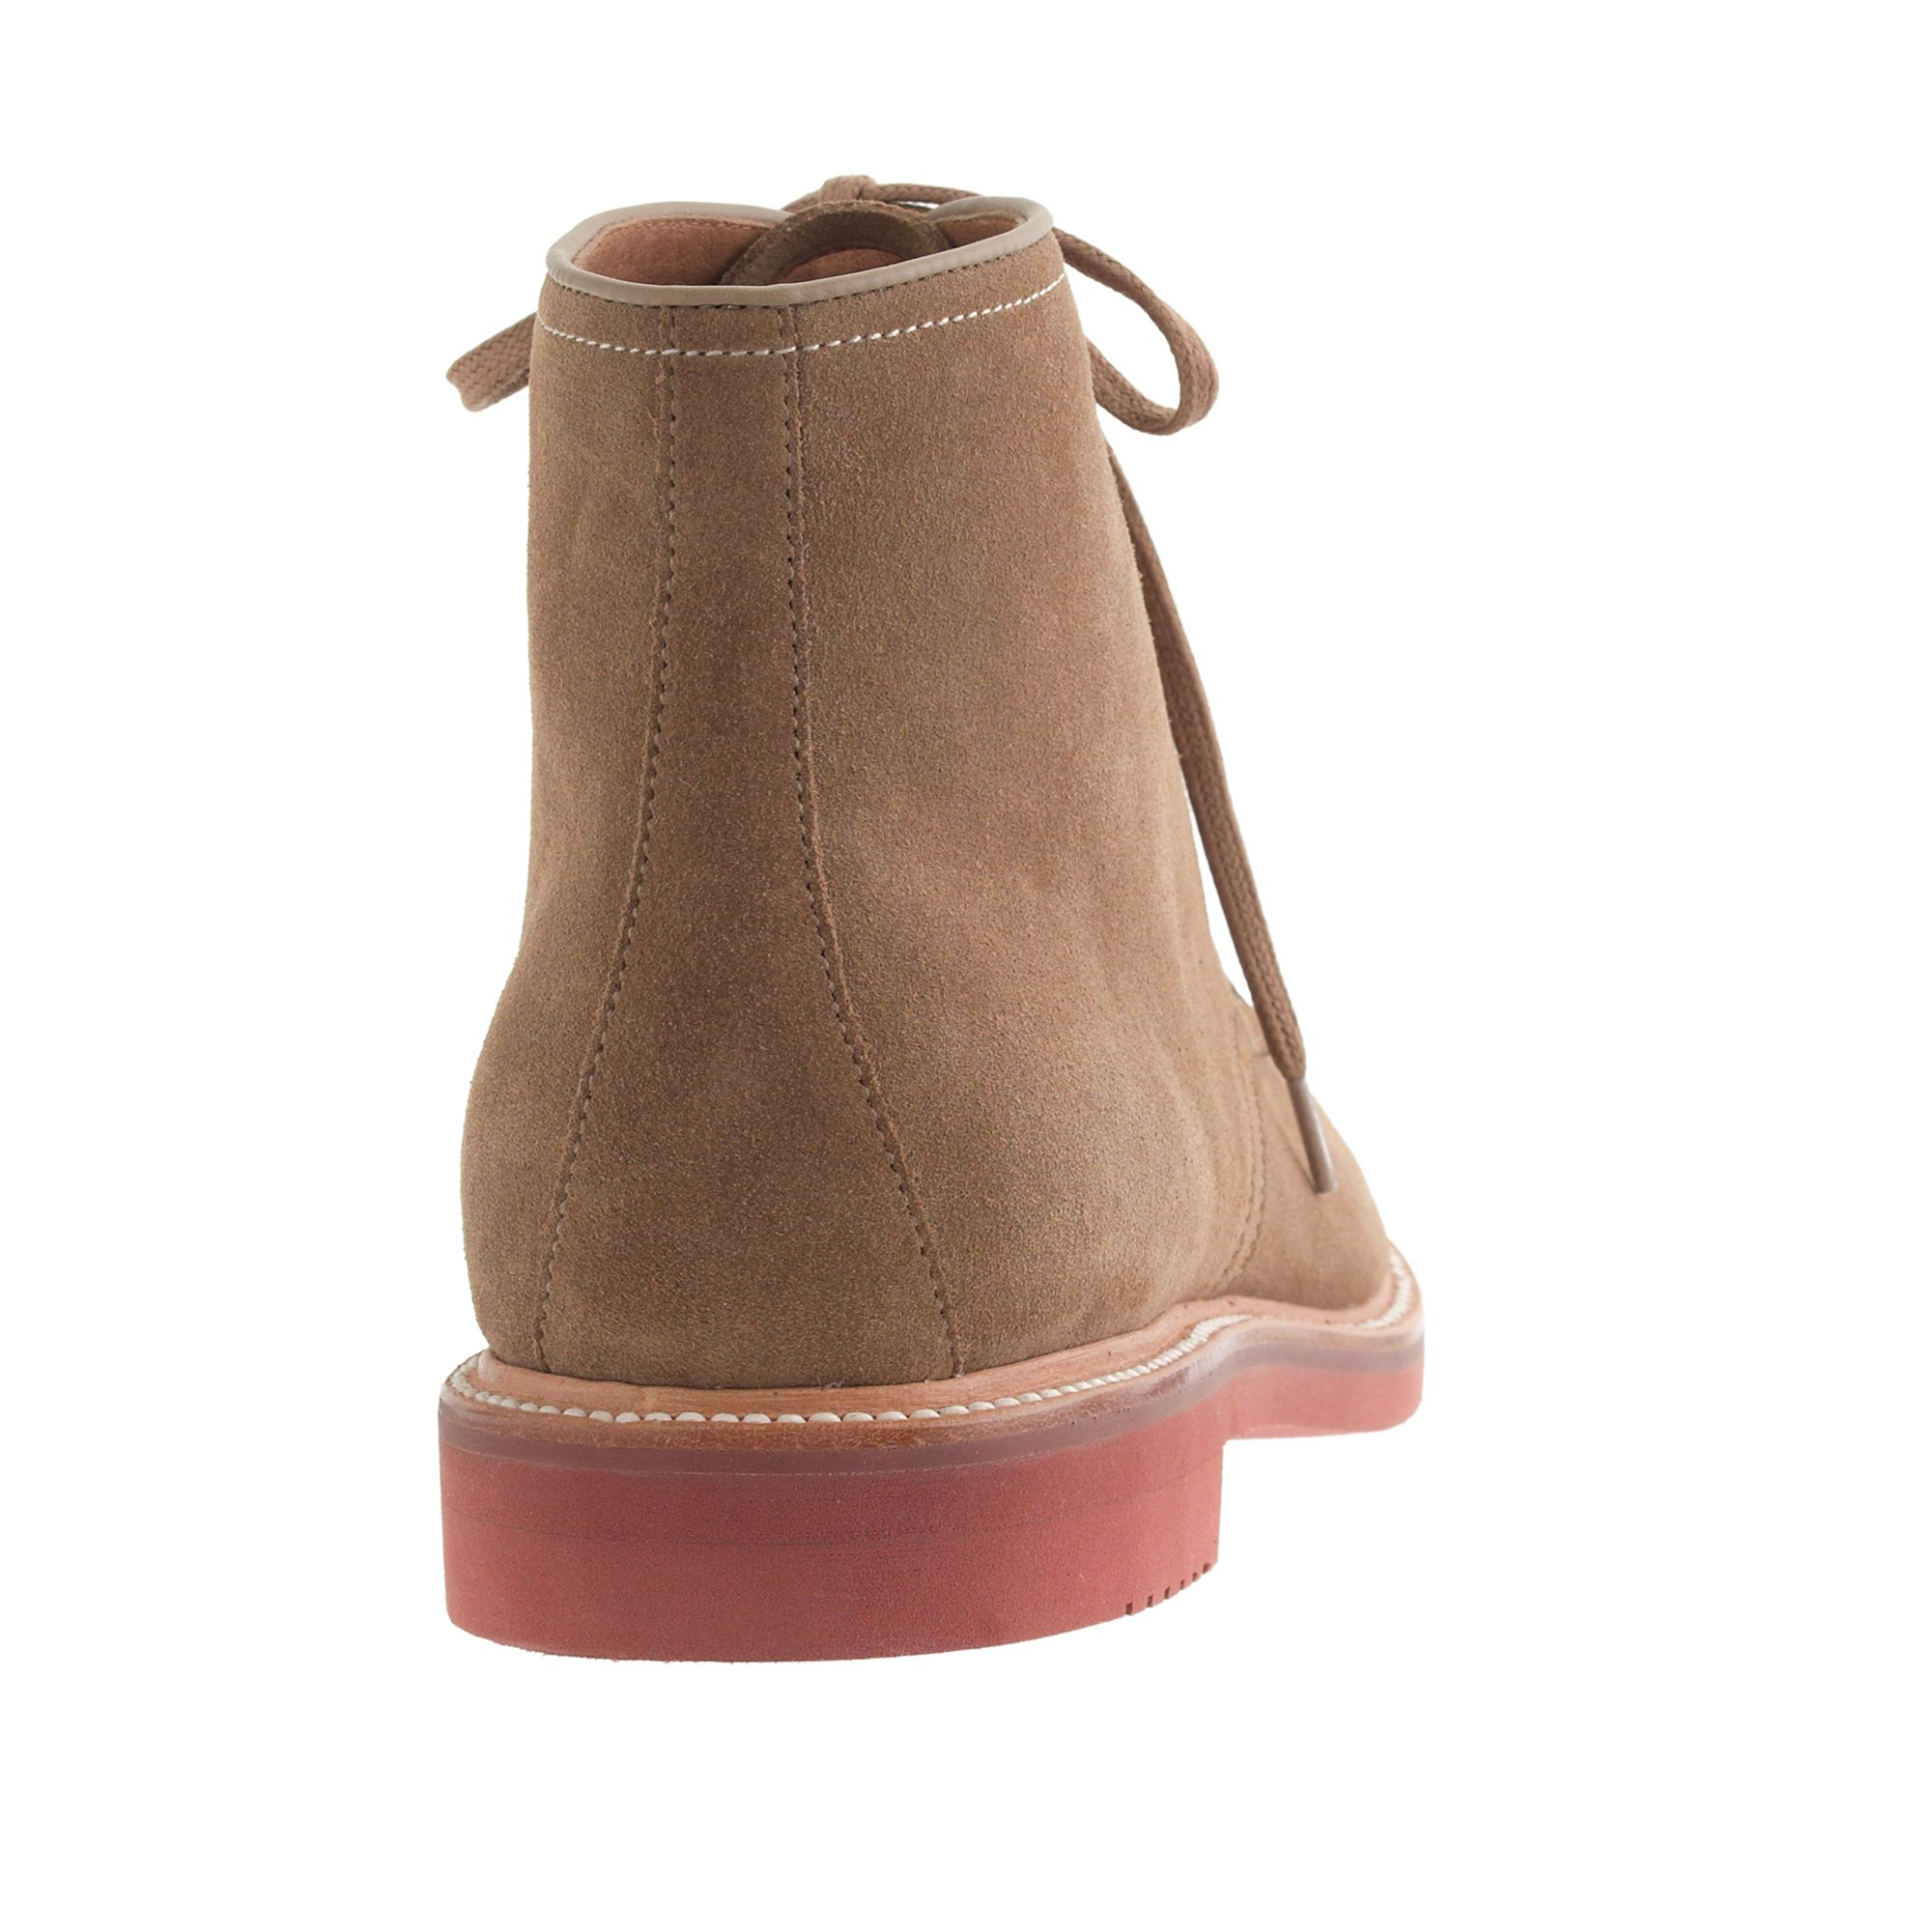 Resole Uggs | Santa Barbara Institute for Consciousness Studies